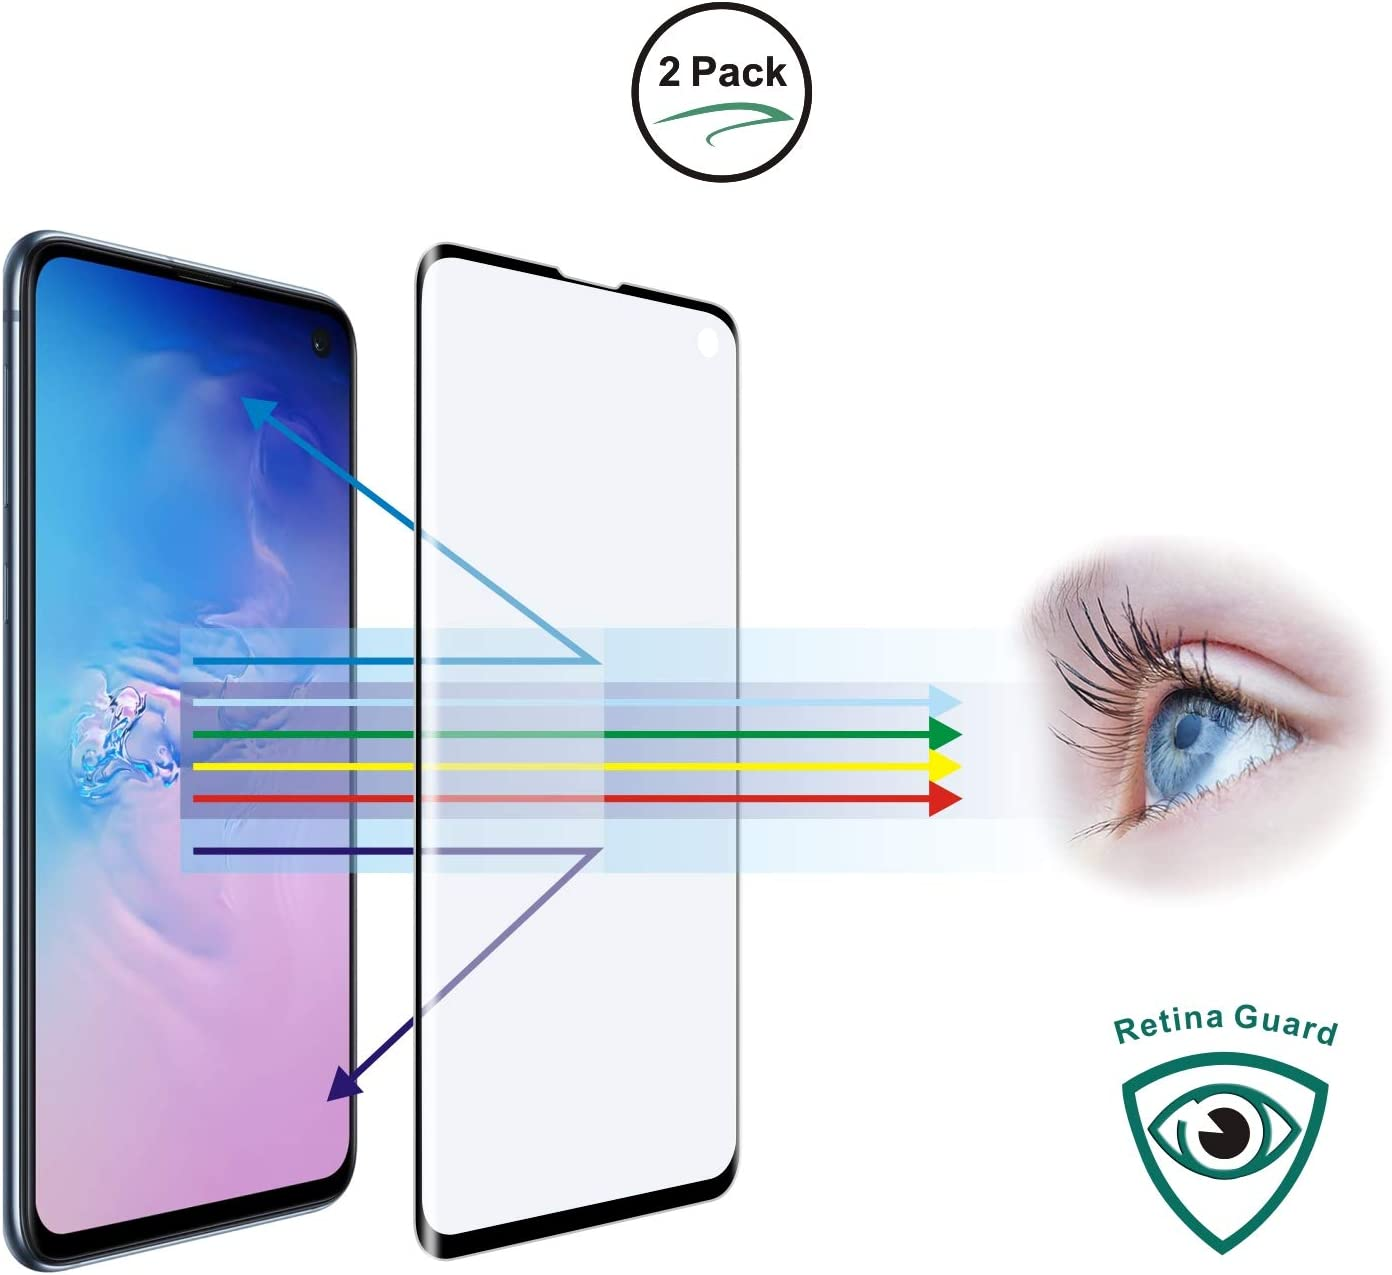 "Entwth 3D Curved Full Coverage Anti Blue Light Screen Tempered Glass Protector[2 Packs] for Samsung Galaxy S10 6.1""[Eye Care] Blocks Excessive Harmful Blue Light & UV Anti Glare 9H Anti-Scratches"